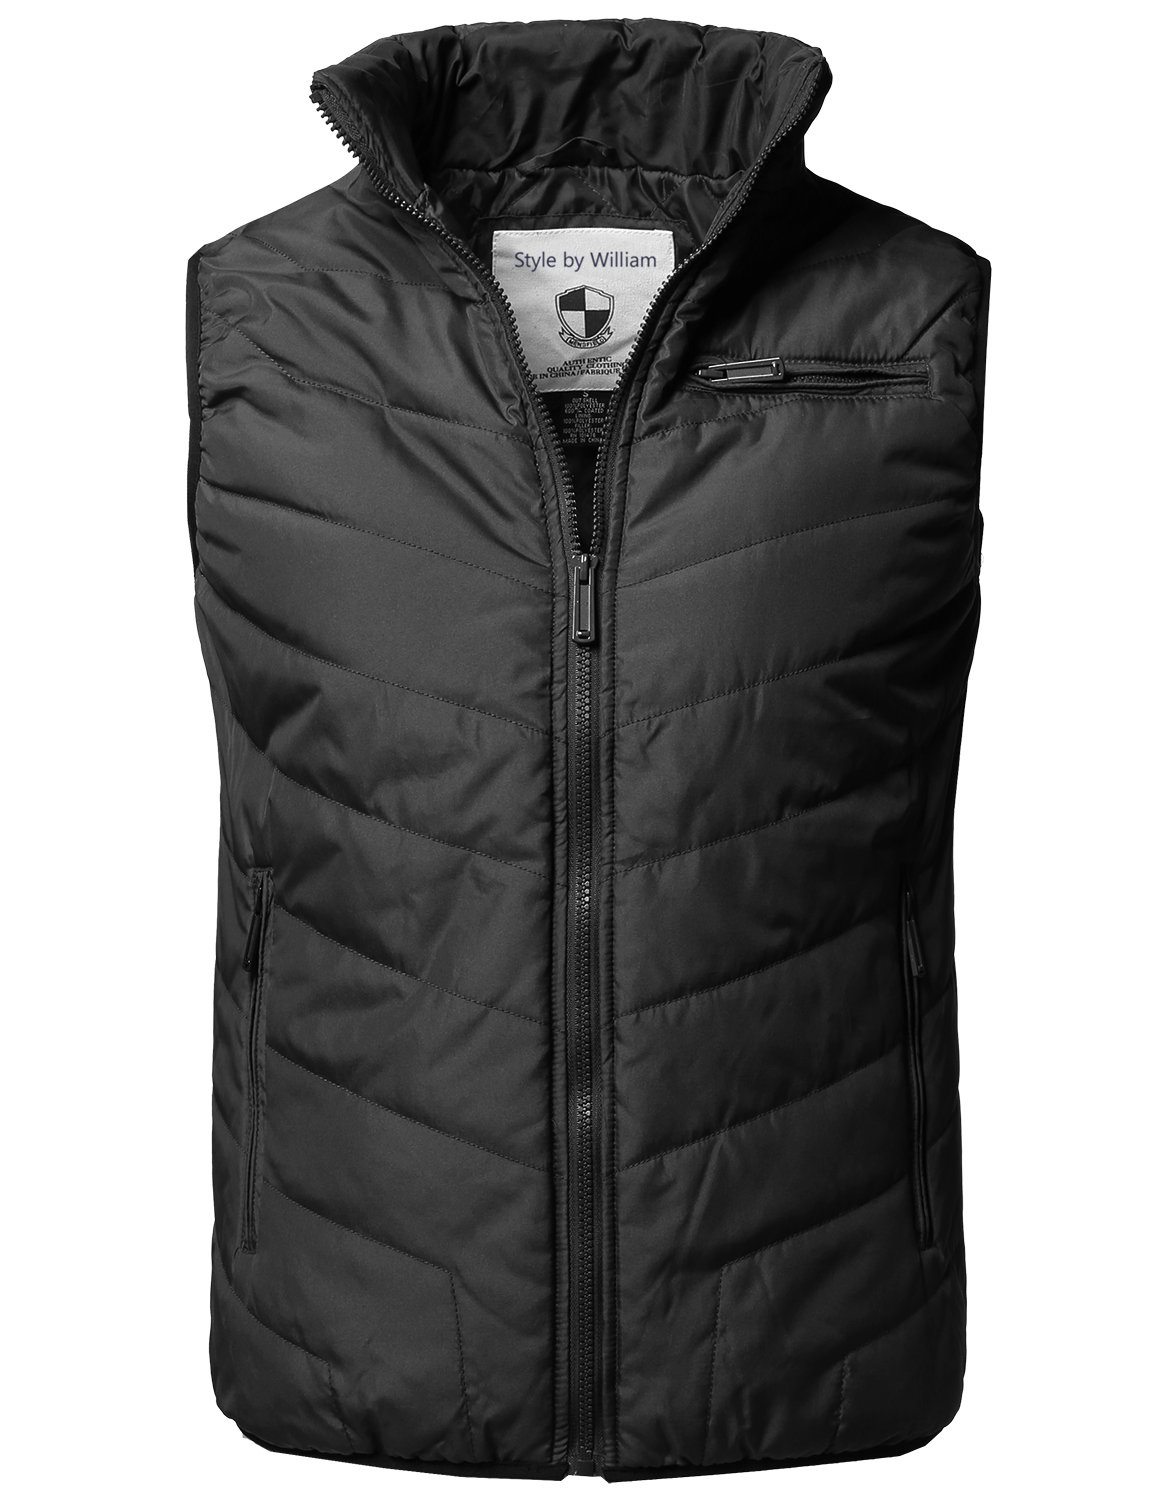 Style by William Solid Front Zip Up Outdoor Comfortable Padded Vest Outwear Jacket Black XL by Style by William